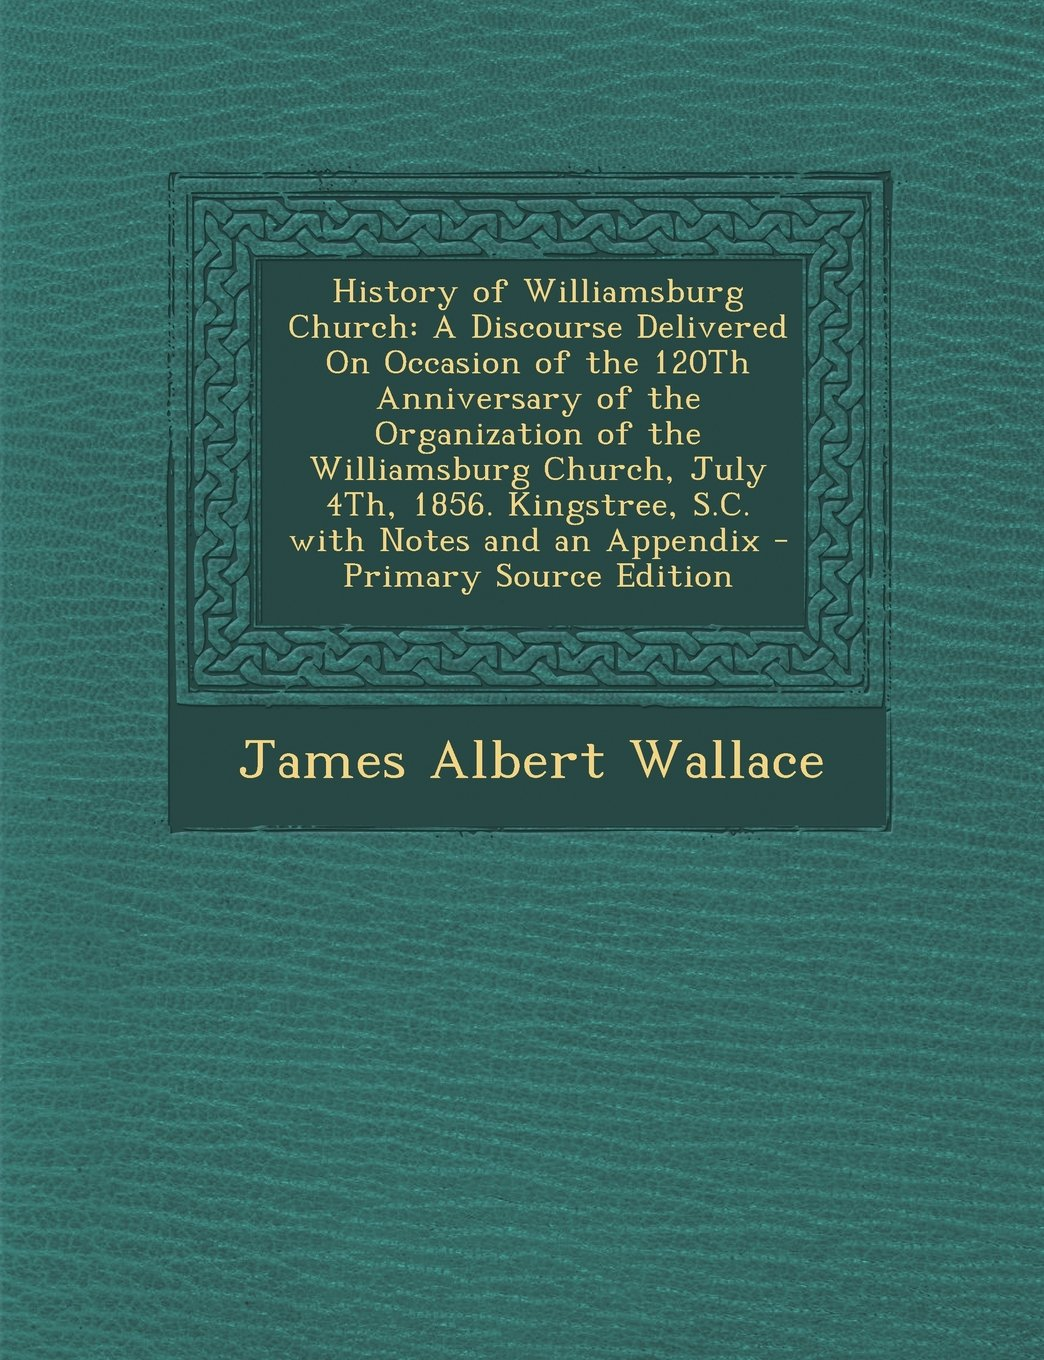 History of Williamsburg Church: A Discourse Delivered On Occasion of the 120Th Anniversary of the Organization of the Williamsburg Church, July 4Th, ... and an Appendix - Primary Source Edition PDF